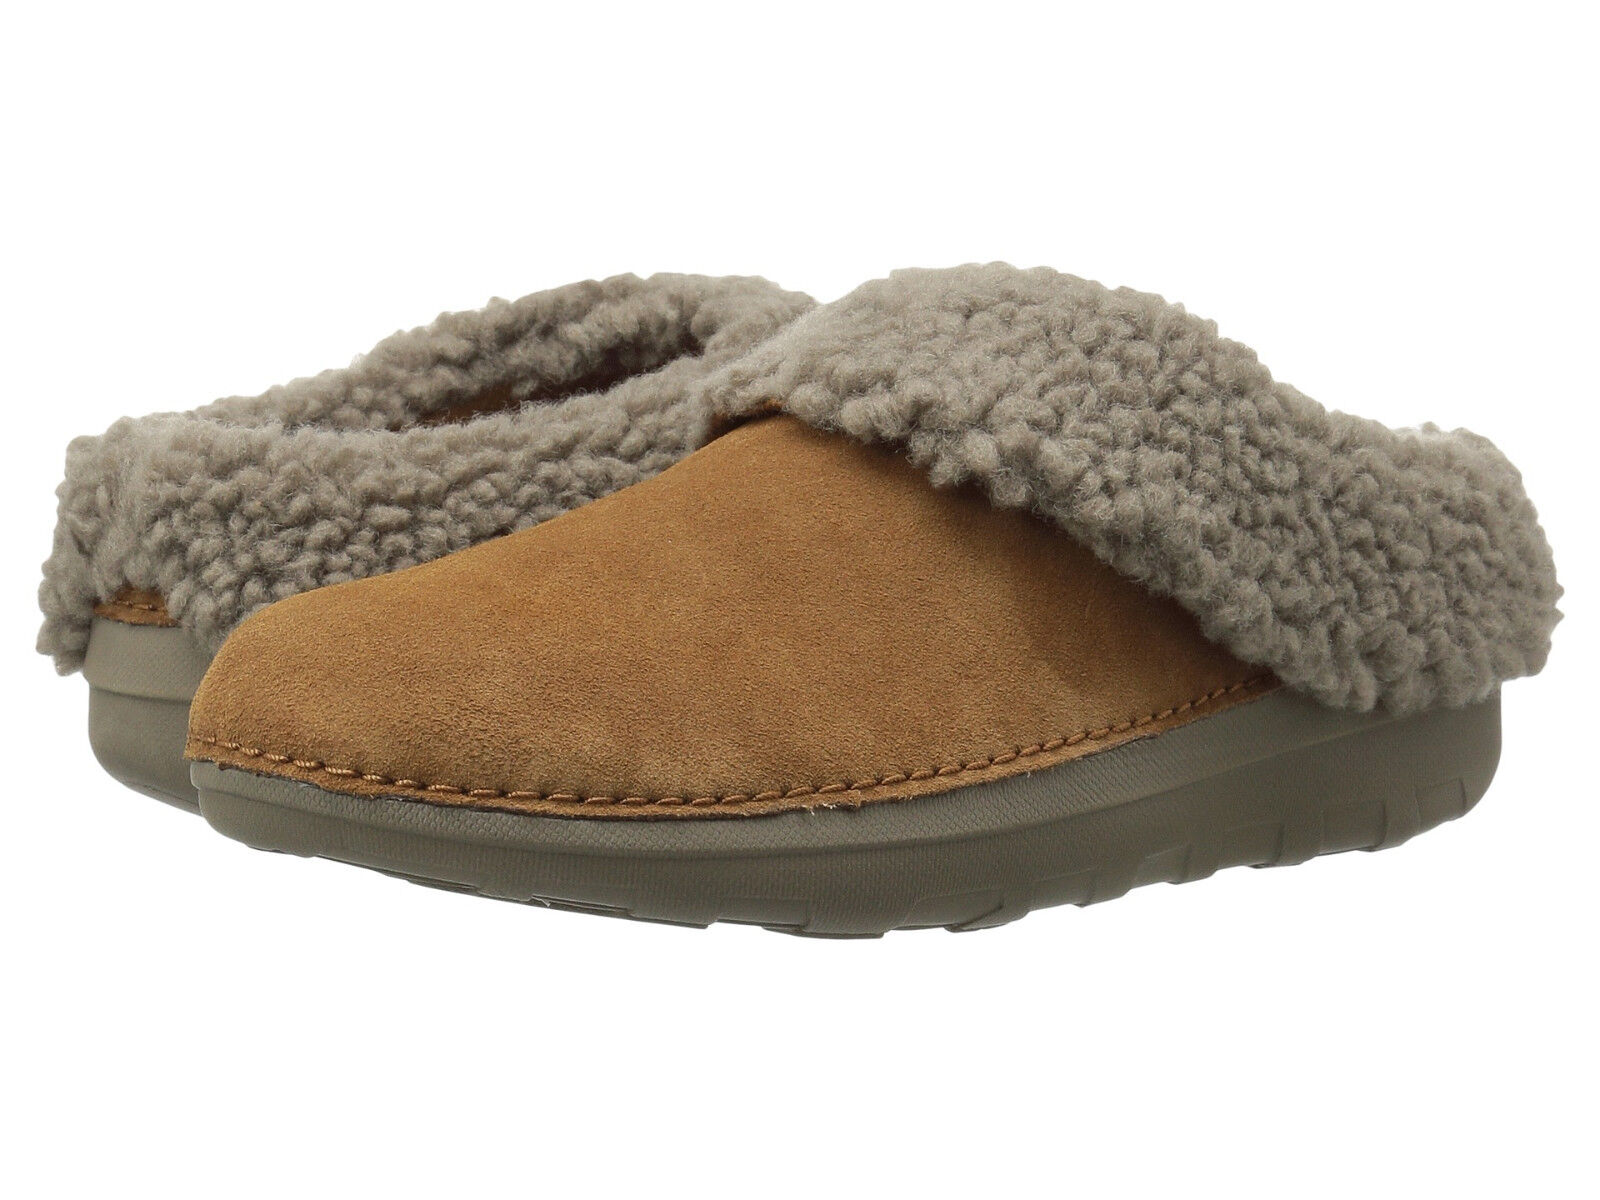 Damens Fitflop Loaff Snug Slippers B76-047 Chestnut Suede 100% Authentic B. New